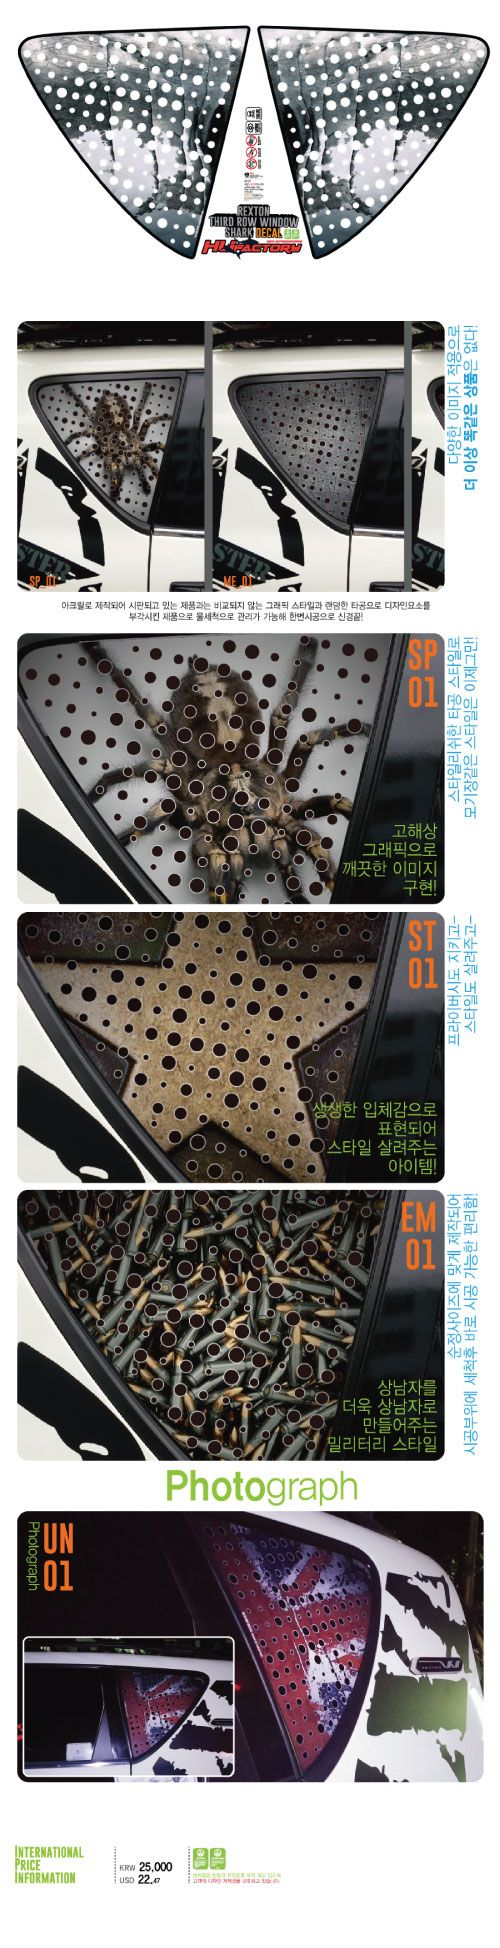 Huifactory of Ssangyong Motor Rexton w yeolchangmun 3 of the vehicle decal design.